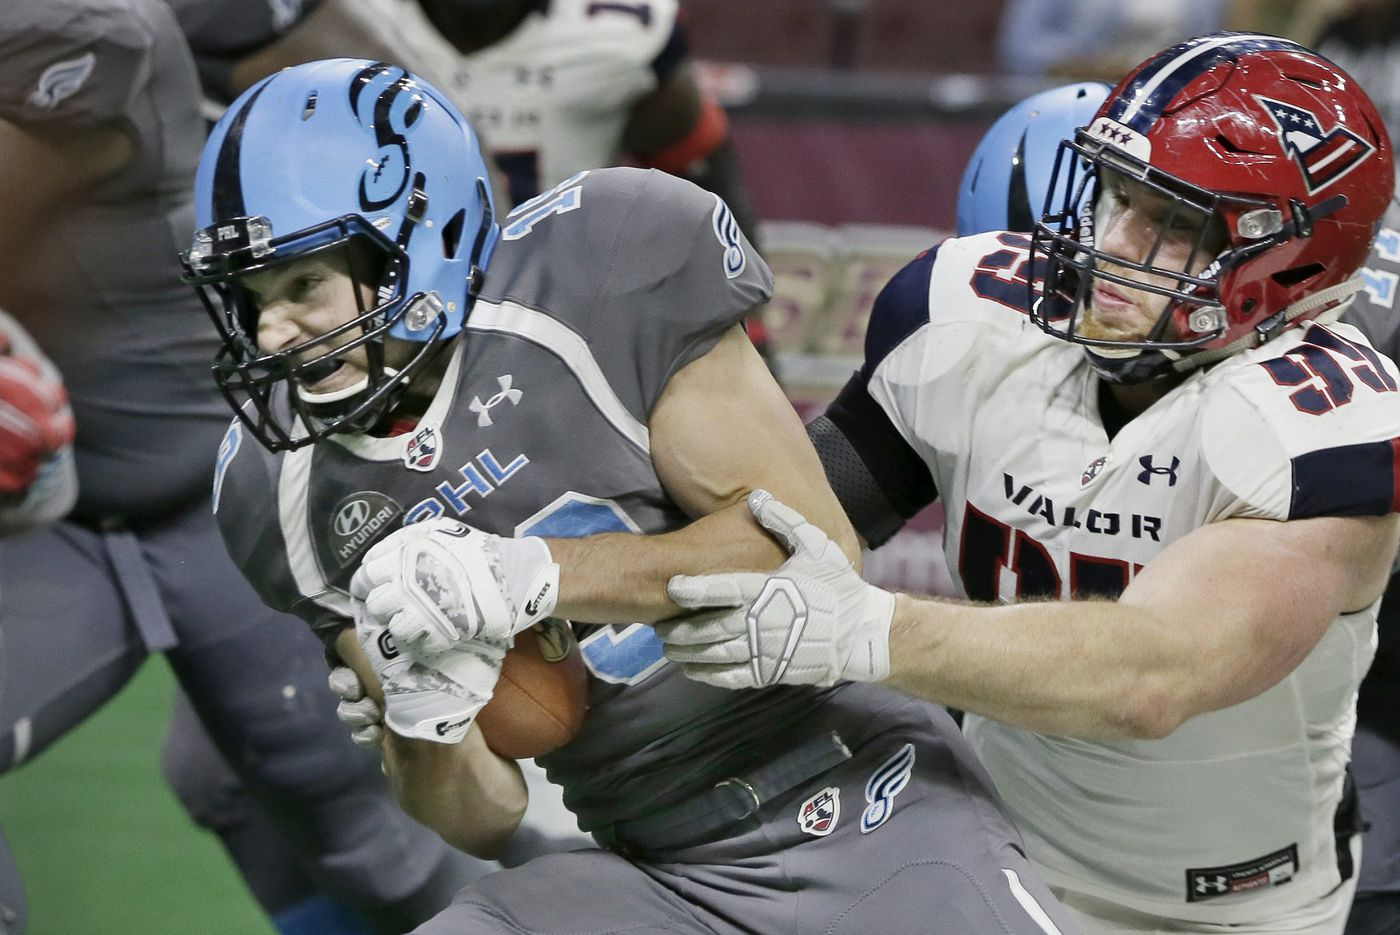 WR Aaron Wascha key for Soul against Albany